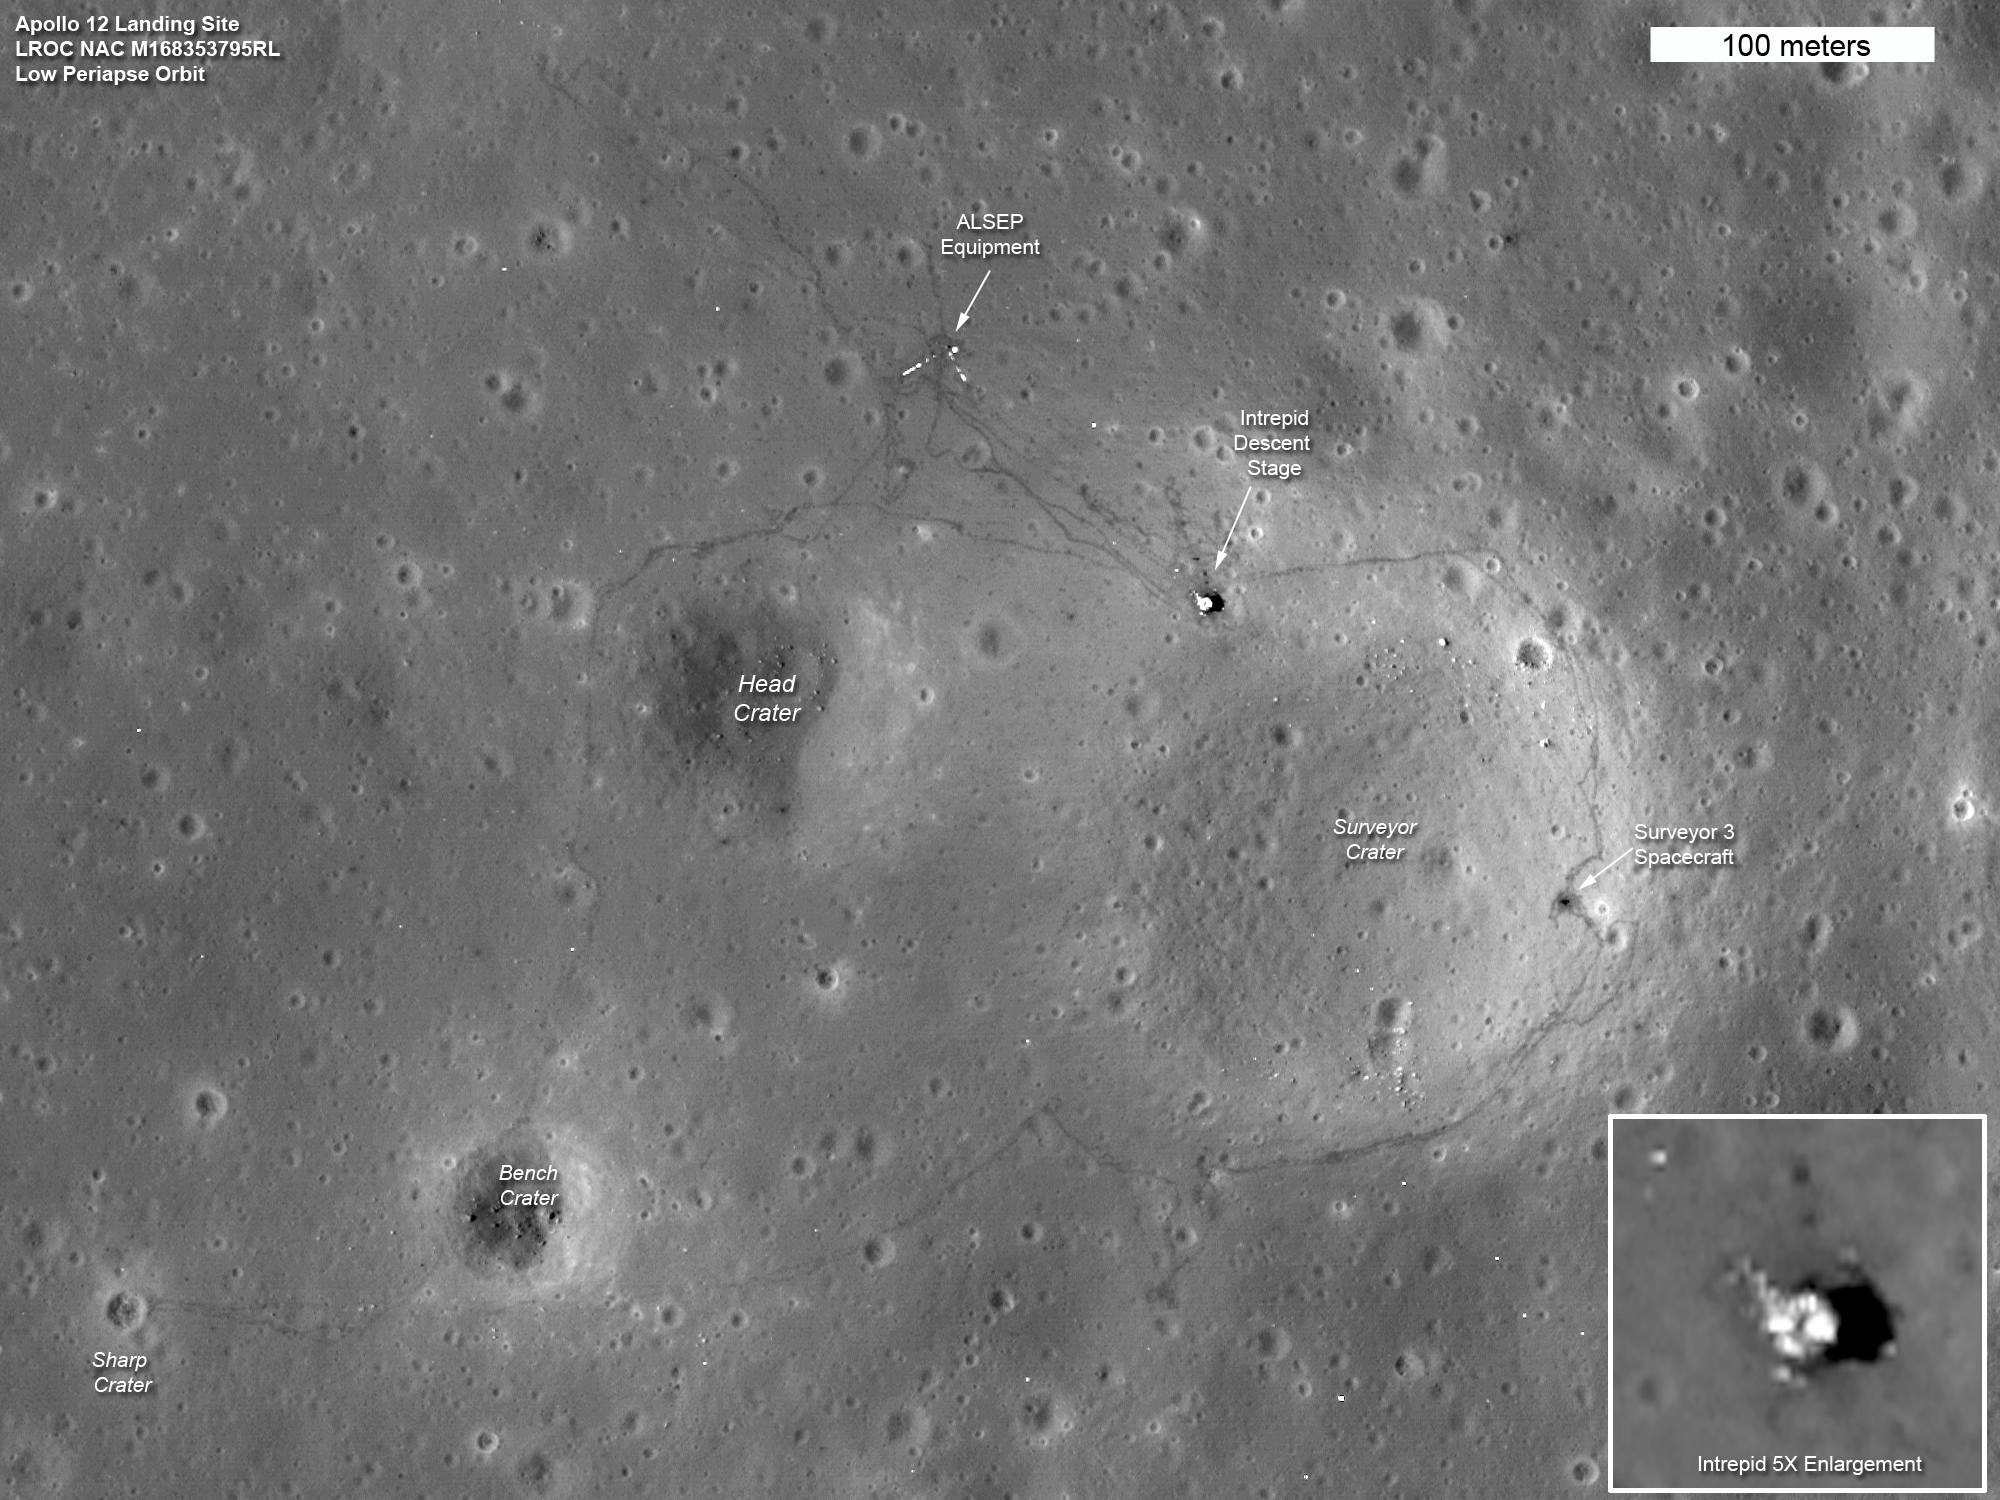 lunar landing sites visible from earth - photo #6